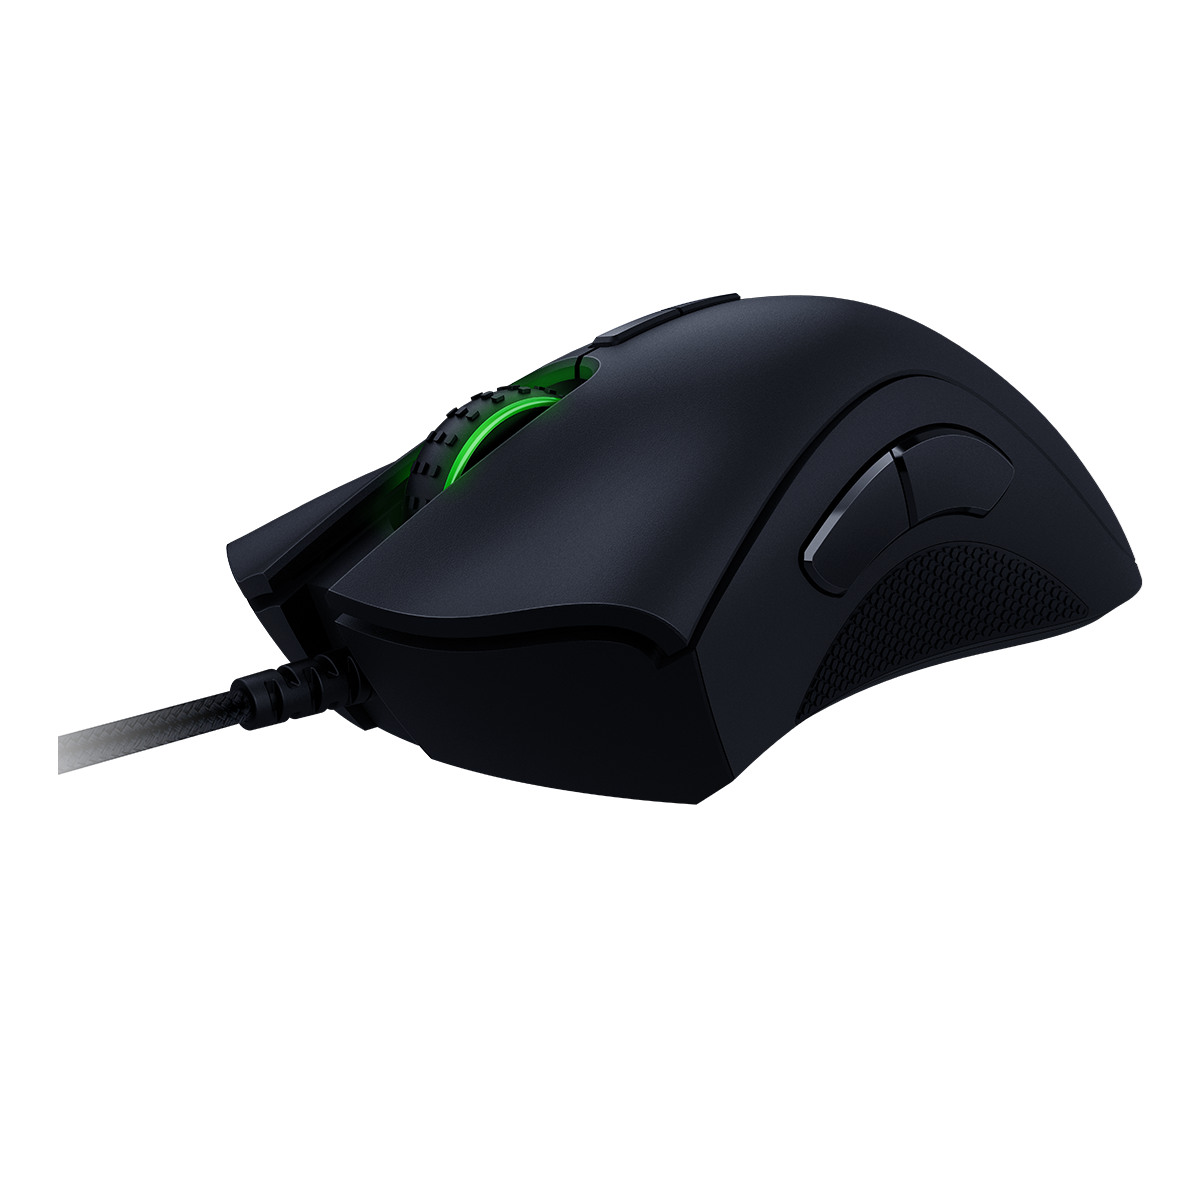 Razer DeathAdder Elite